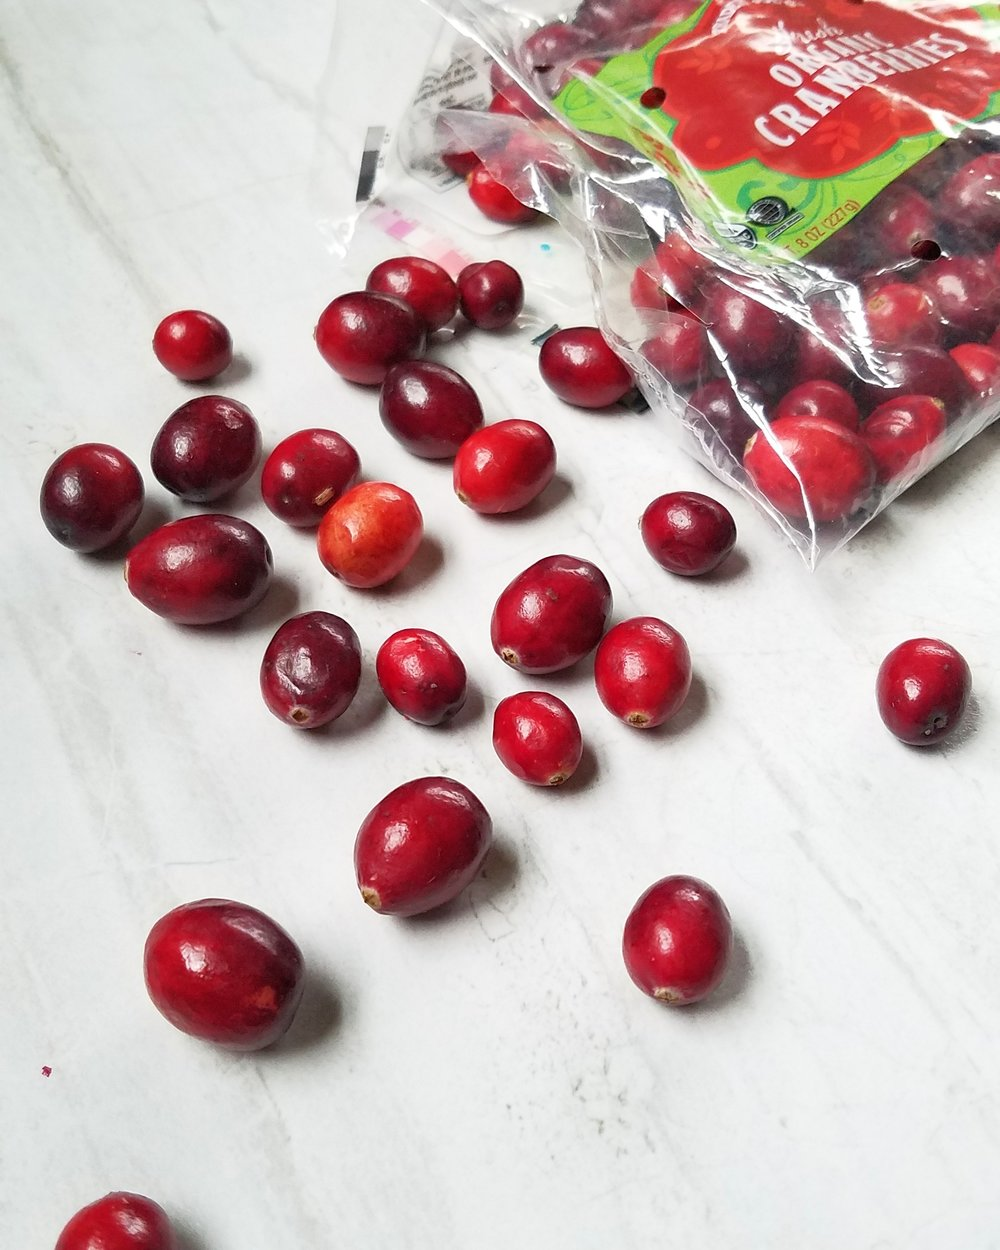 Trader Joe's Organic Cranberries